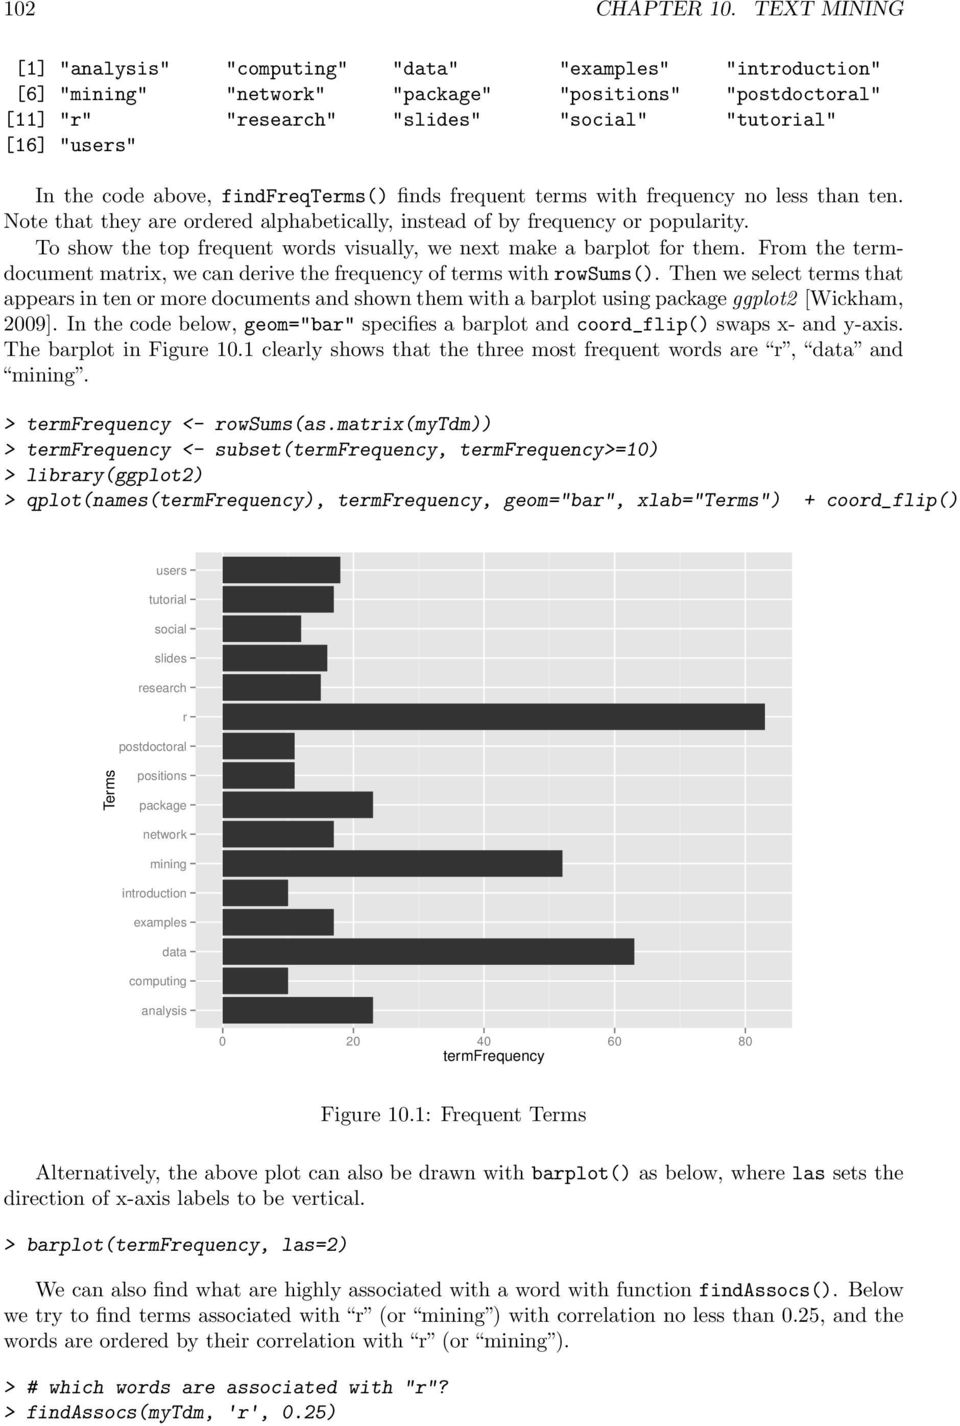 R and Data Mining: Examples and Case Studies 1 - PDF